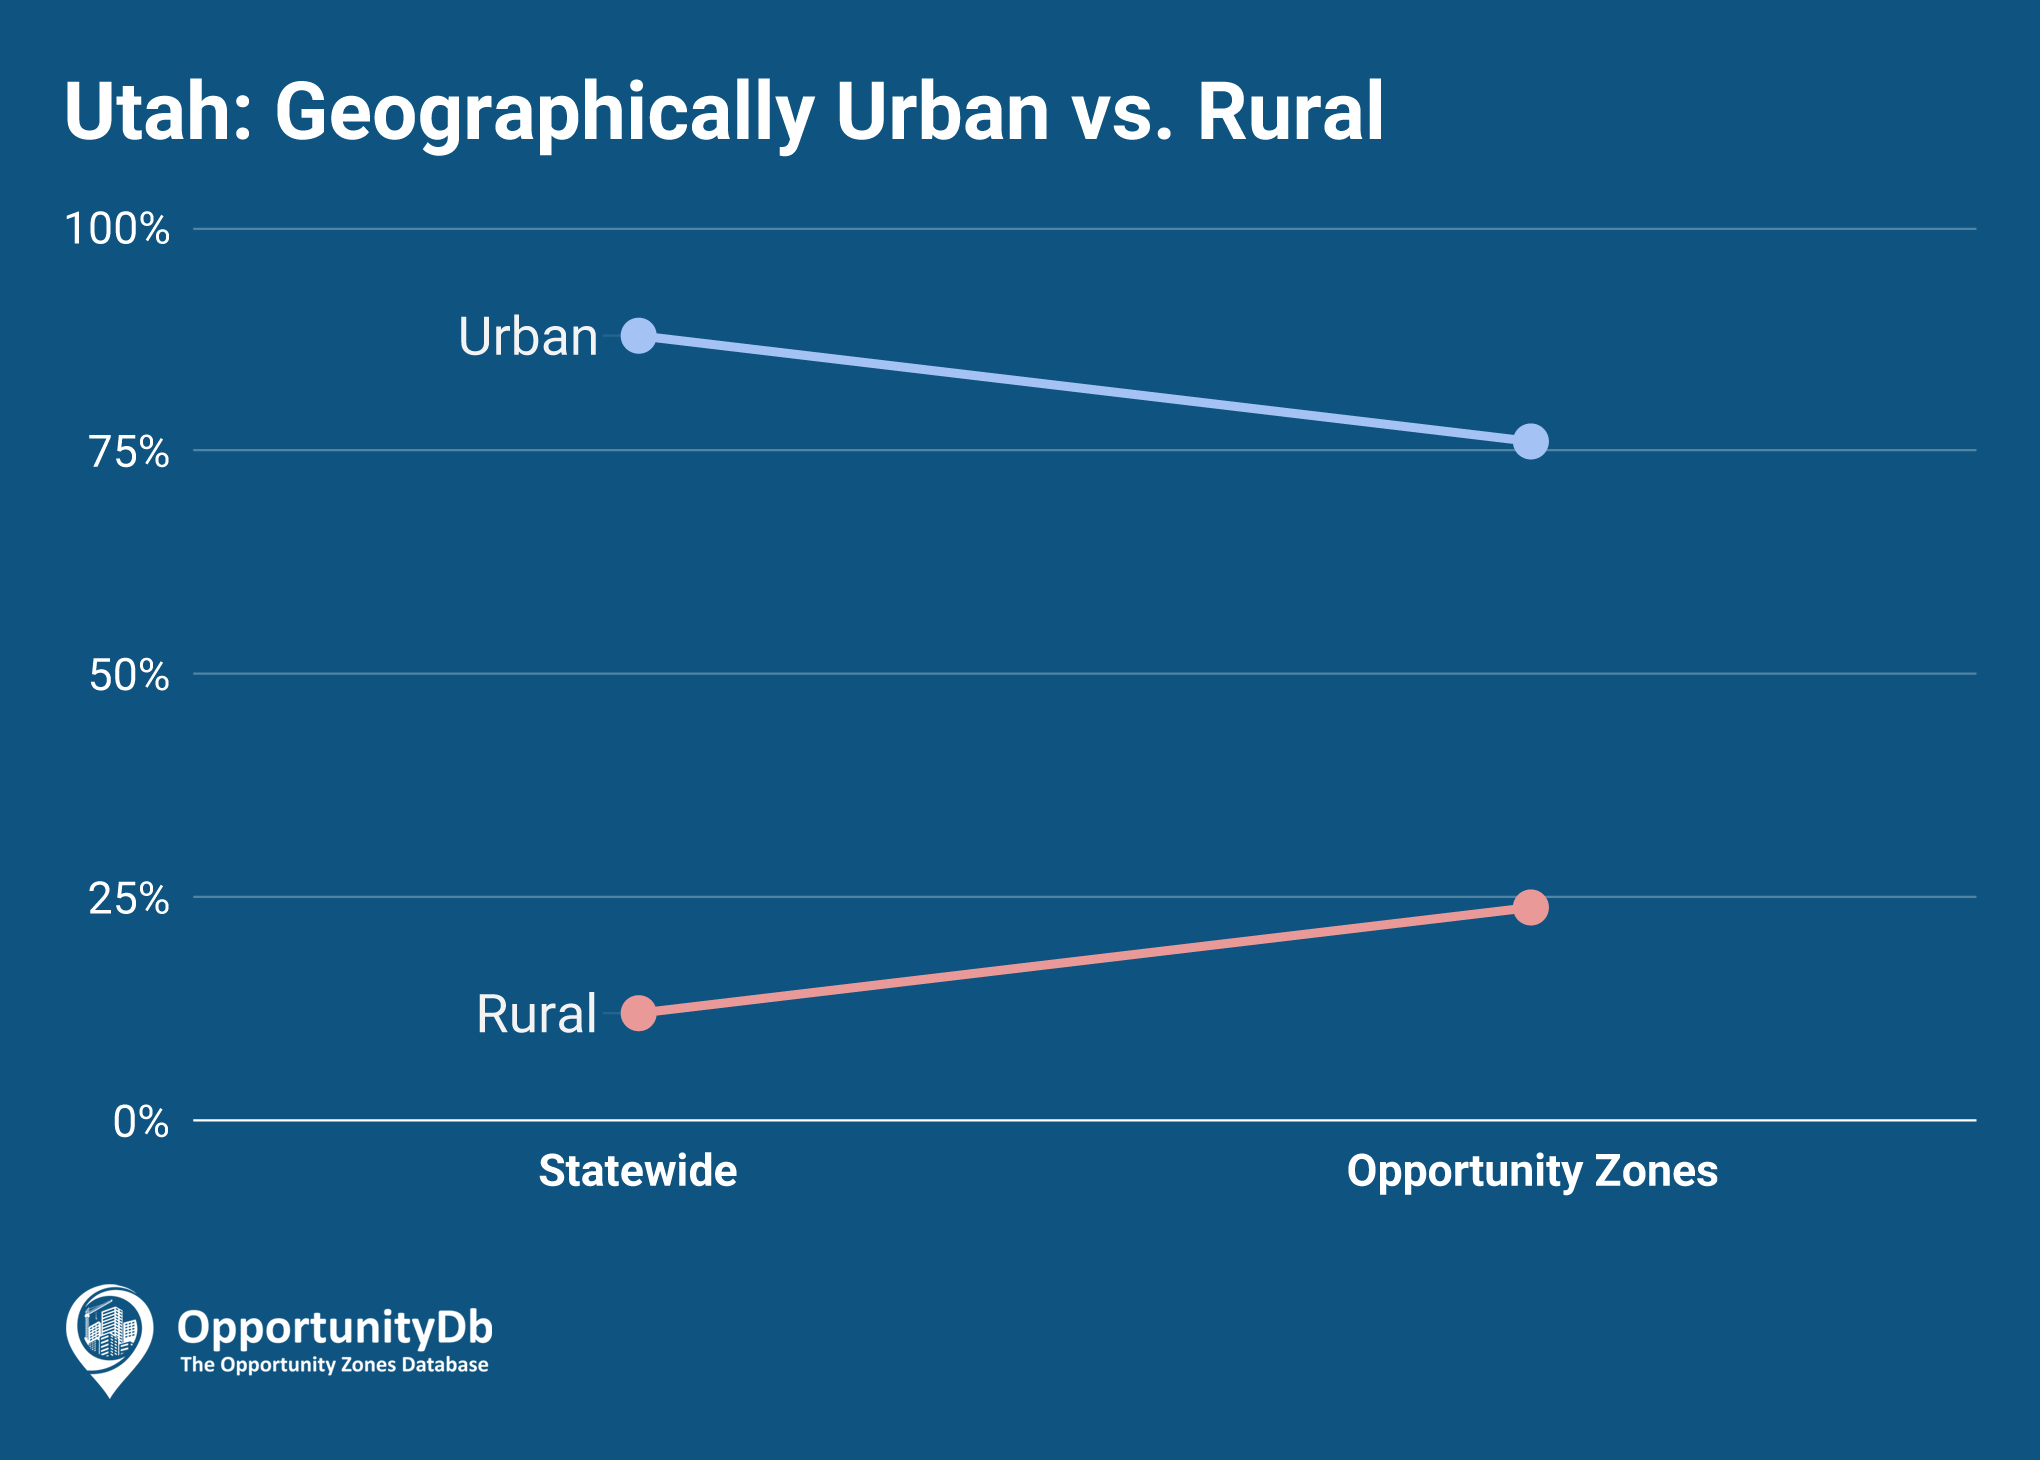 Urban vs. Rural in Utah Opportunity Zones